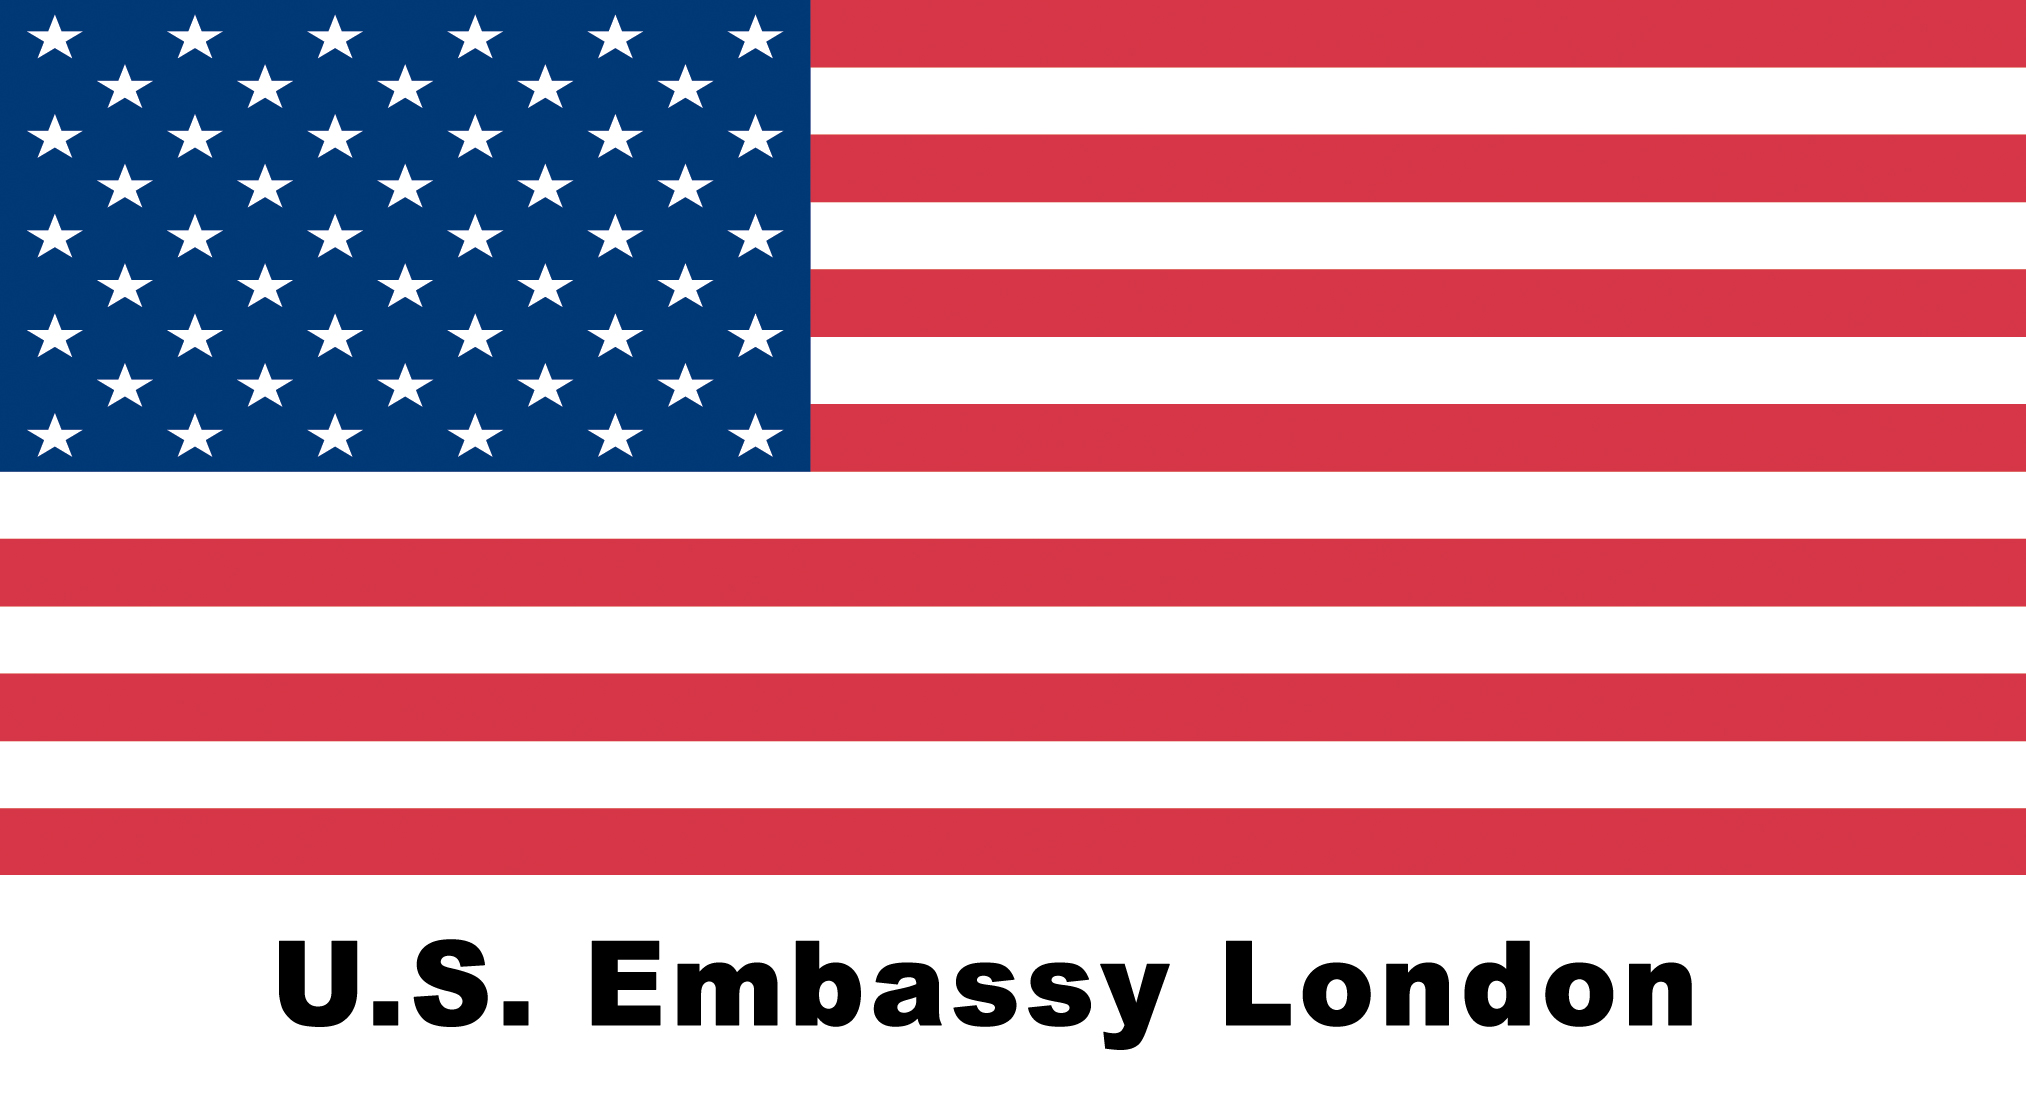 US_Flag_with_US_Embassy_text_Color_96dpi